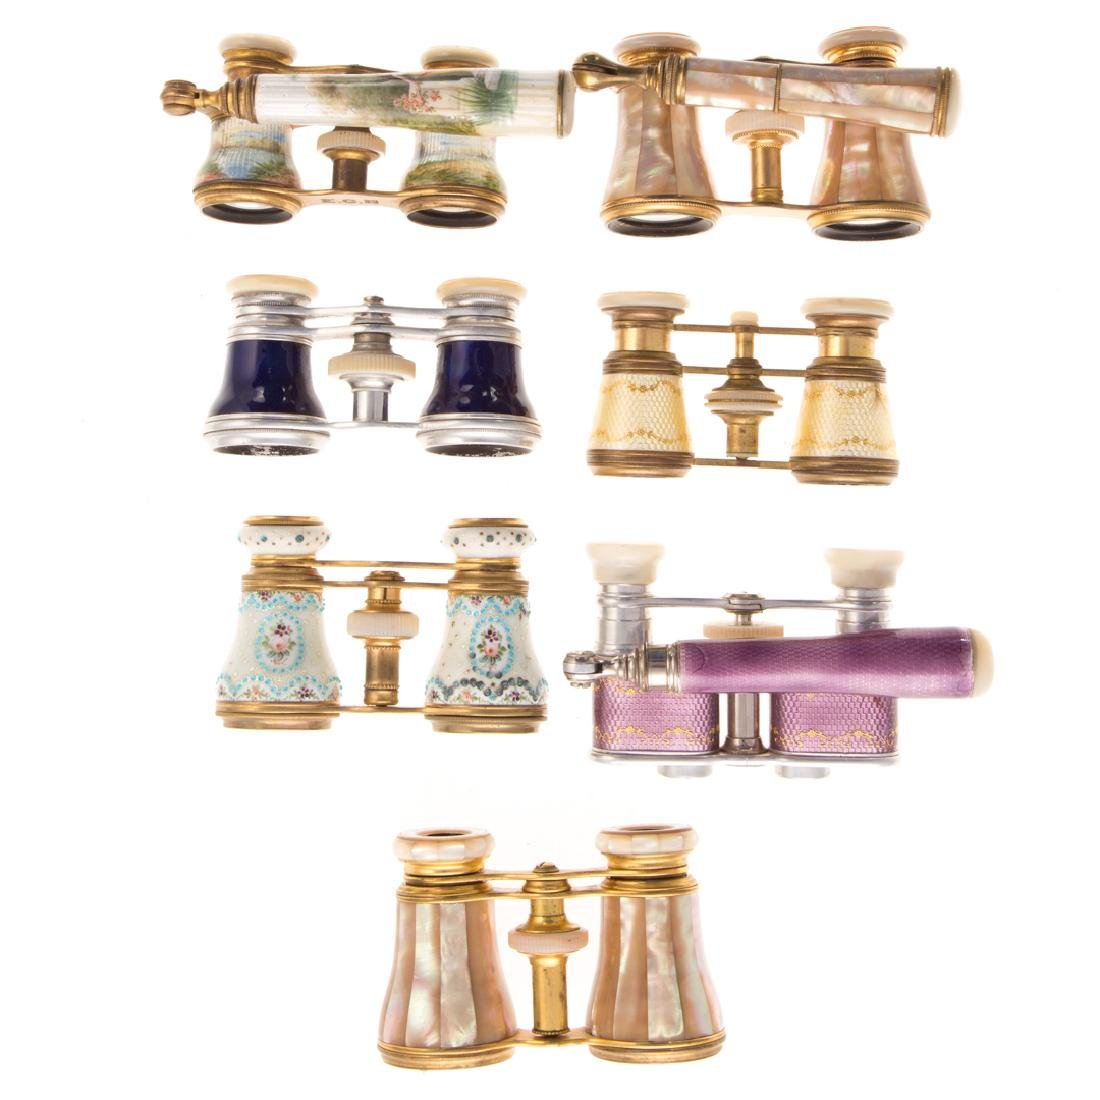 Eight sets of French opera glasses